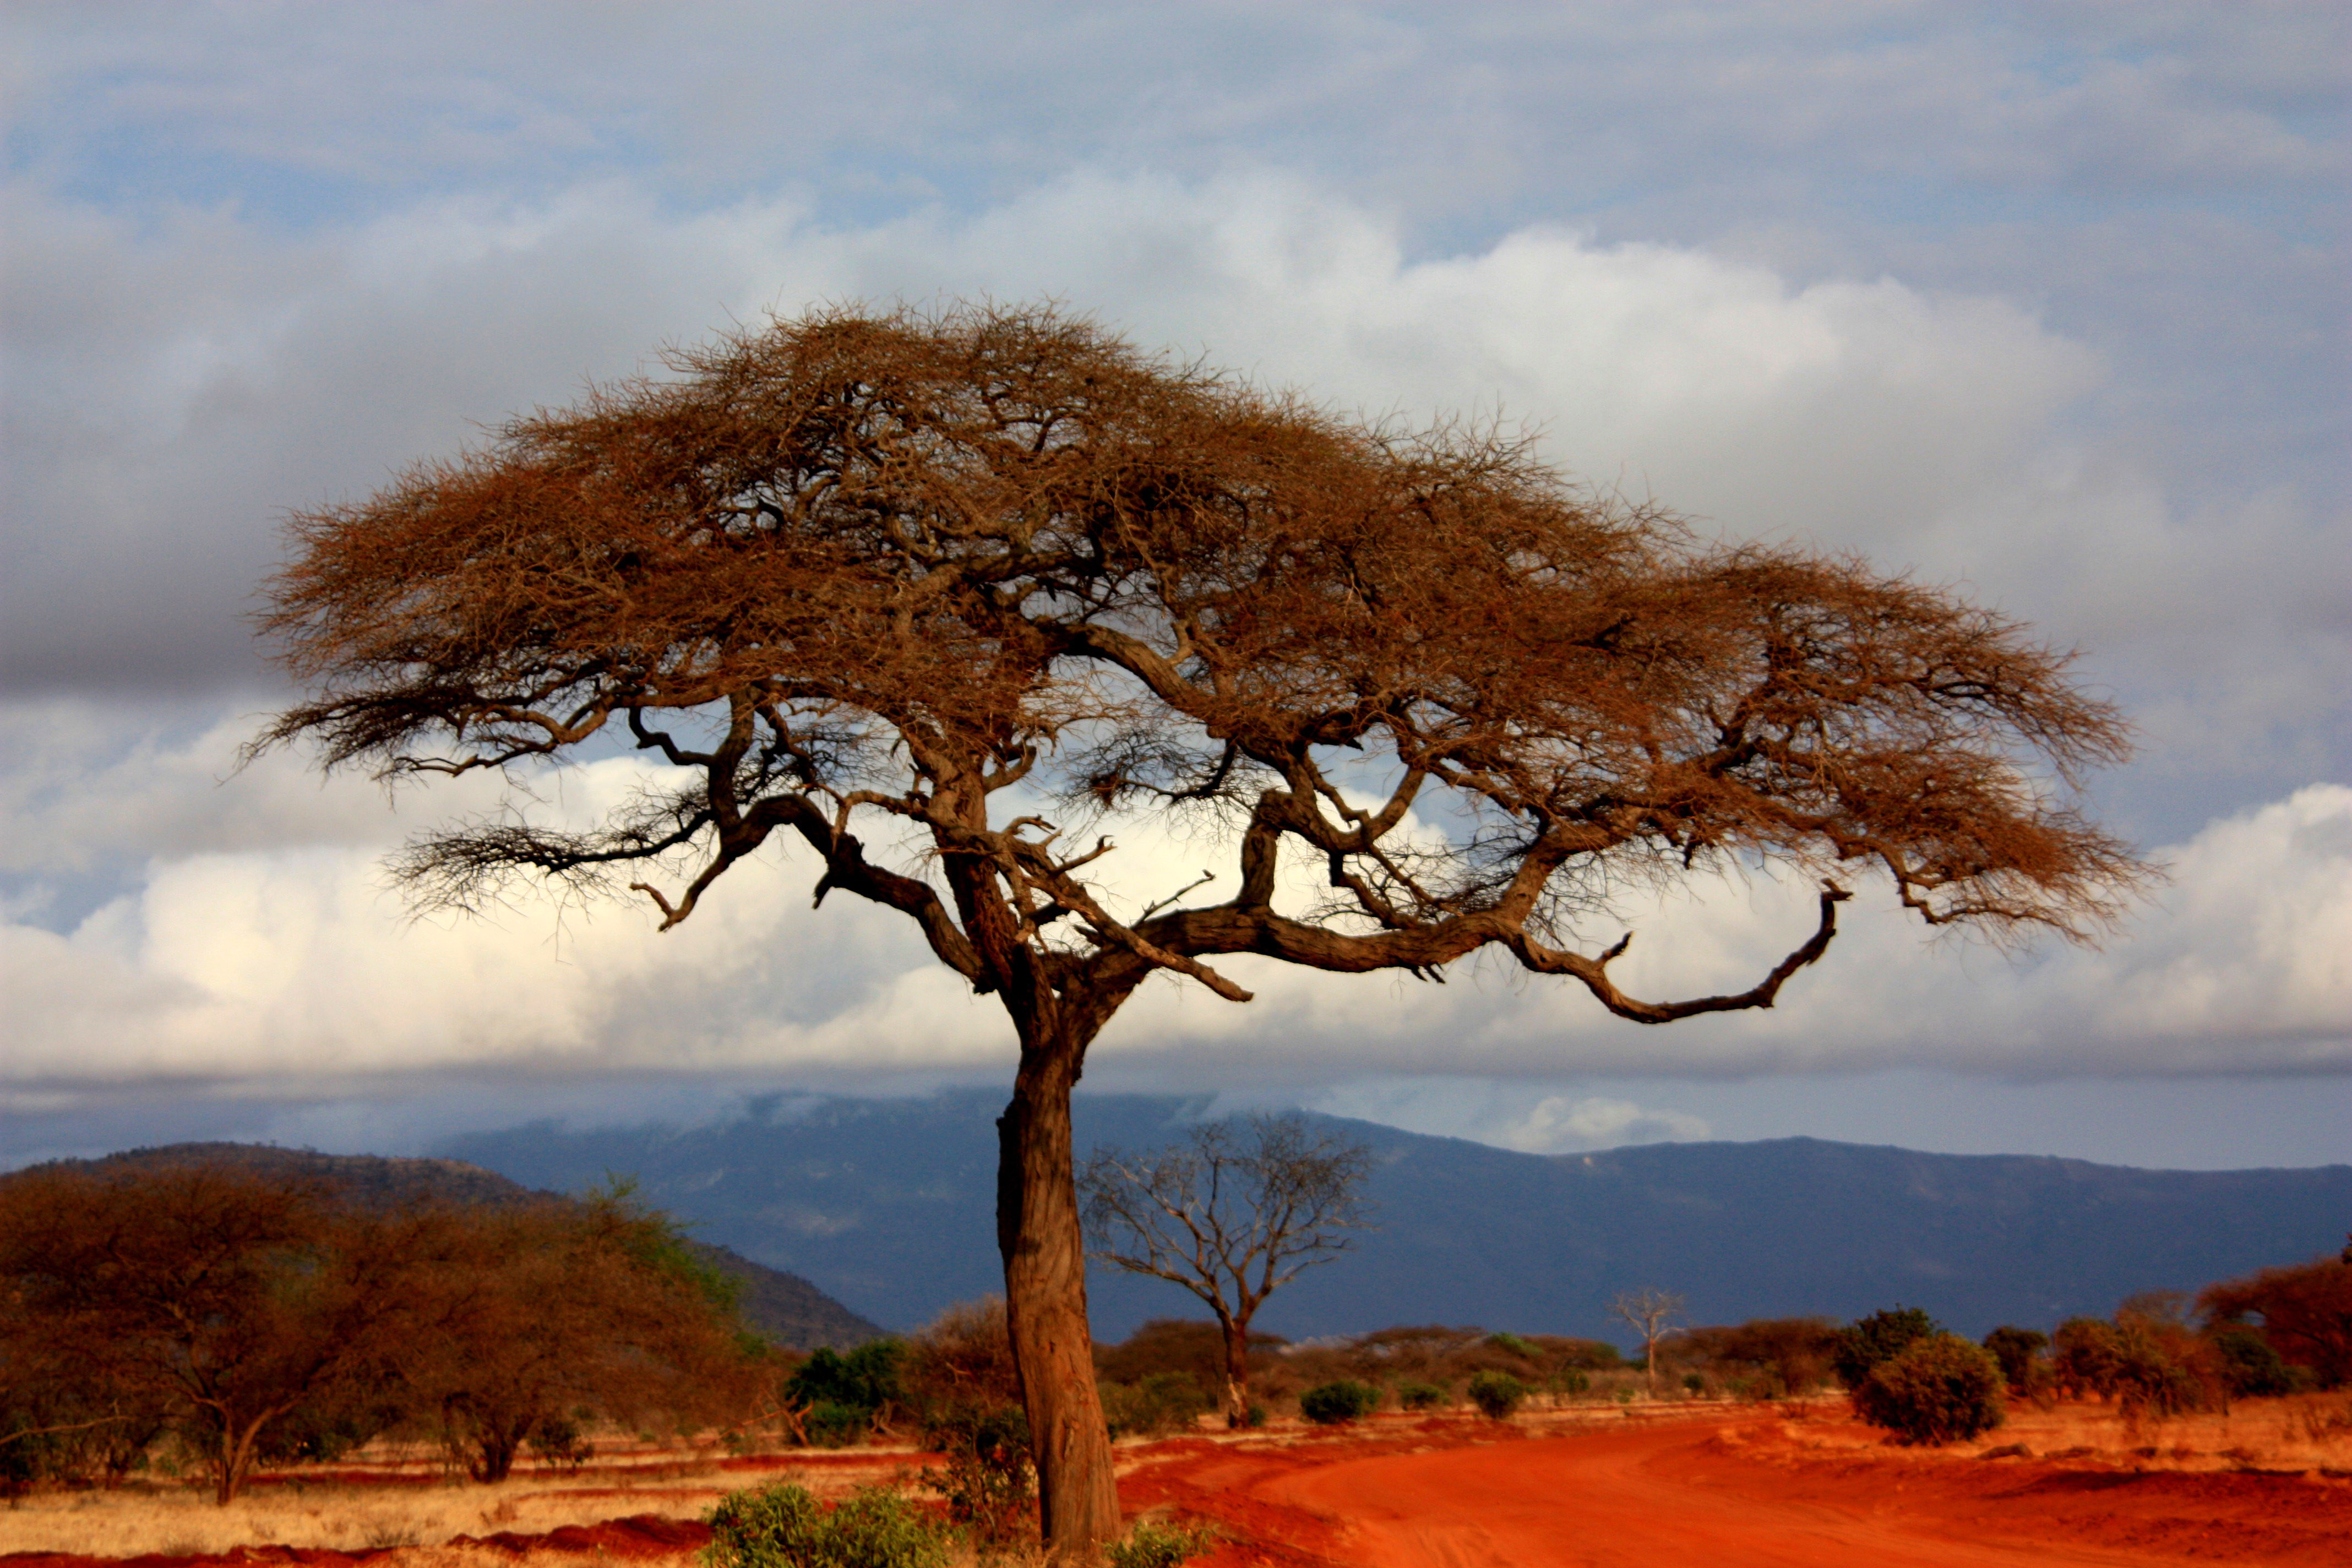 Trees in the landscape in Kenya on the Plains - Free Public Domain ...